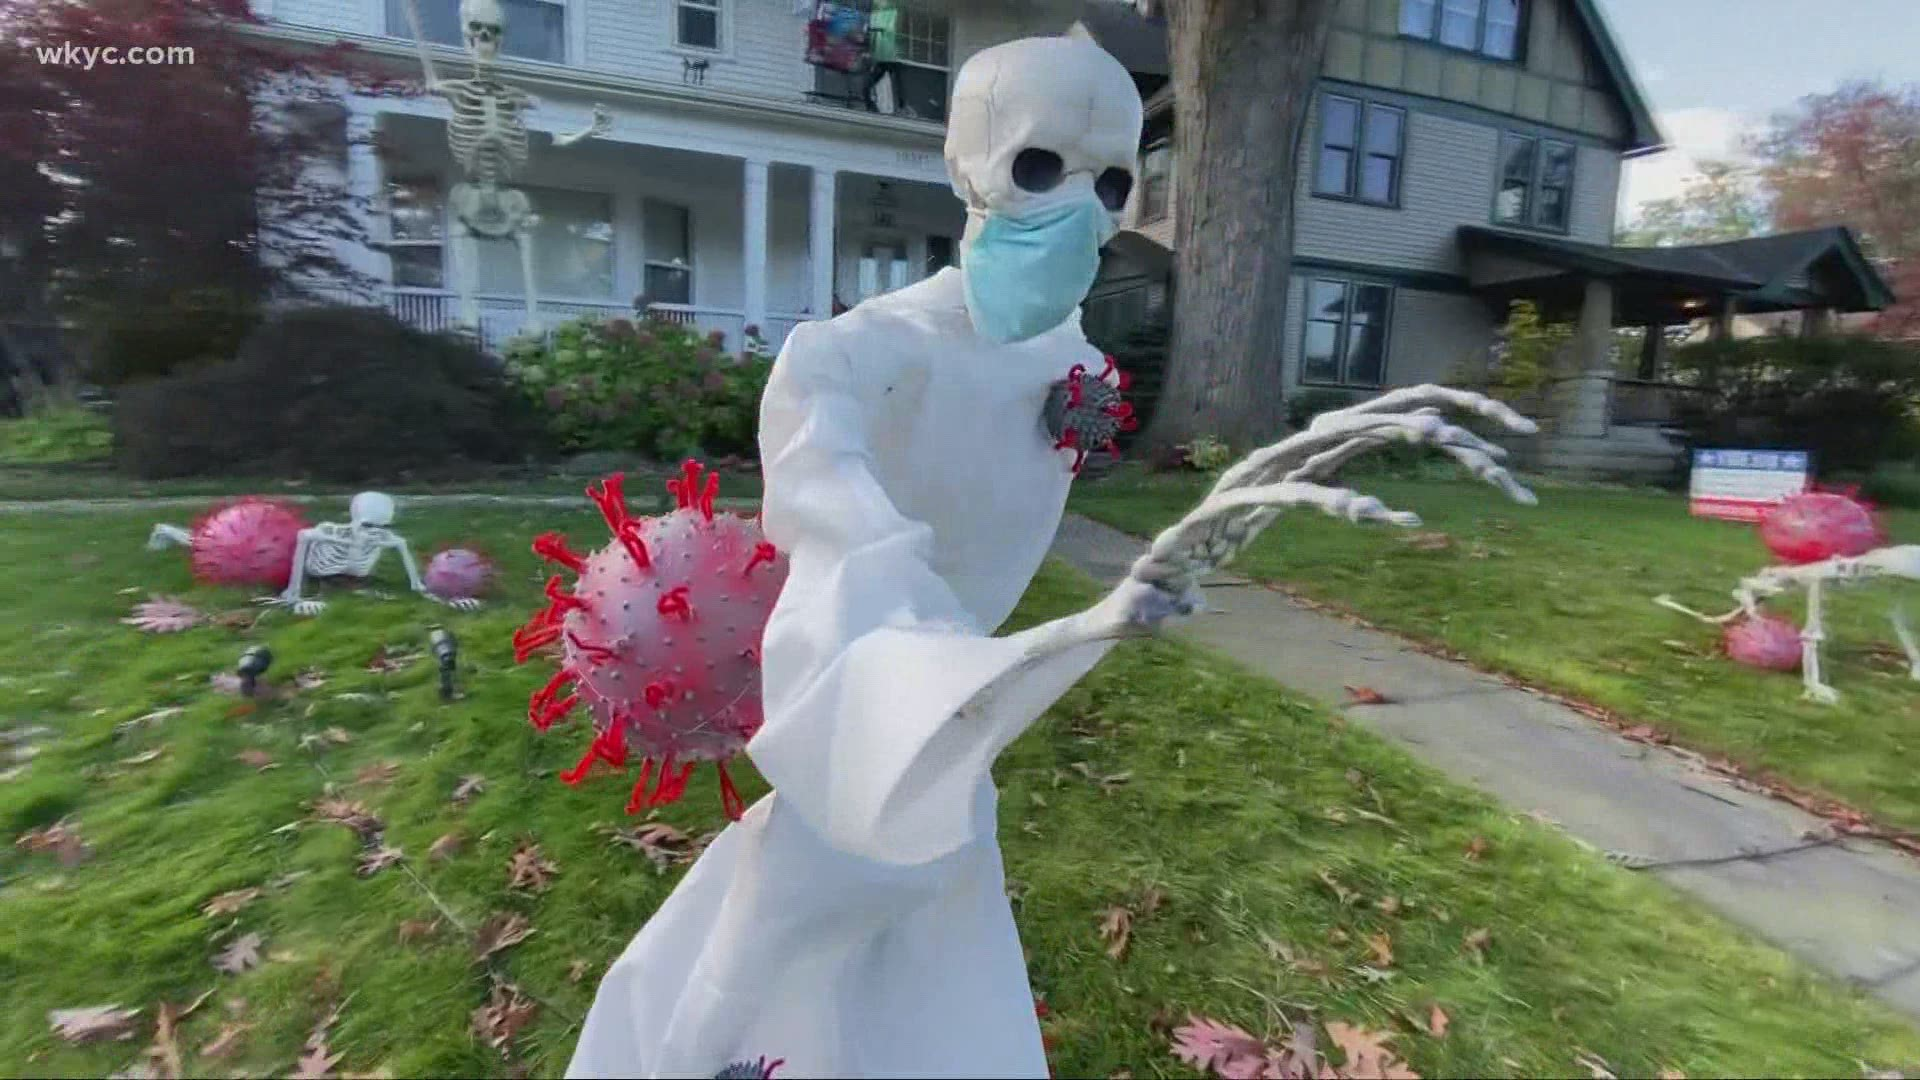 Halloween Skull Decorations.Cleveland House Wins Halloween With Epic Skeleton Decorations Wkyc Com